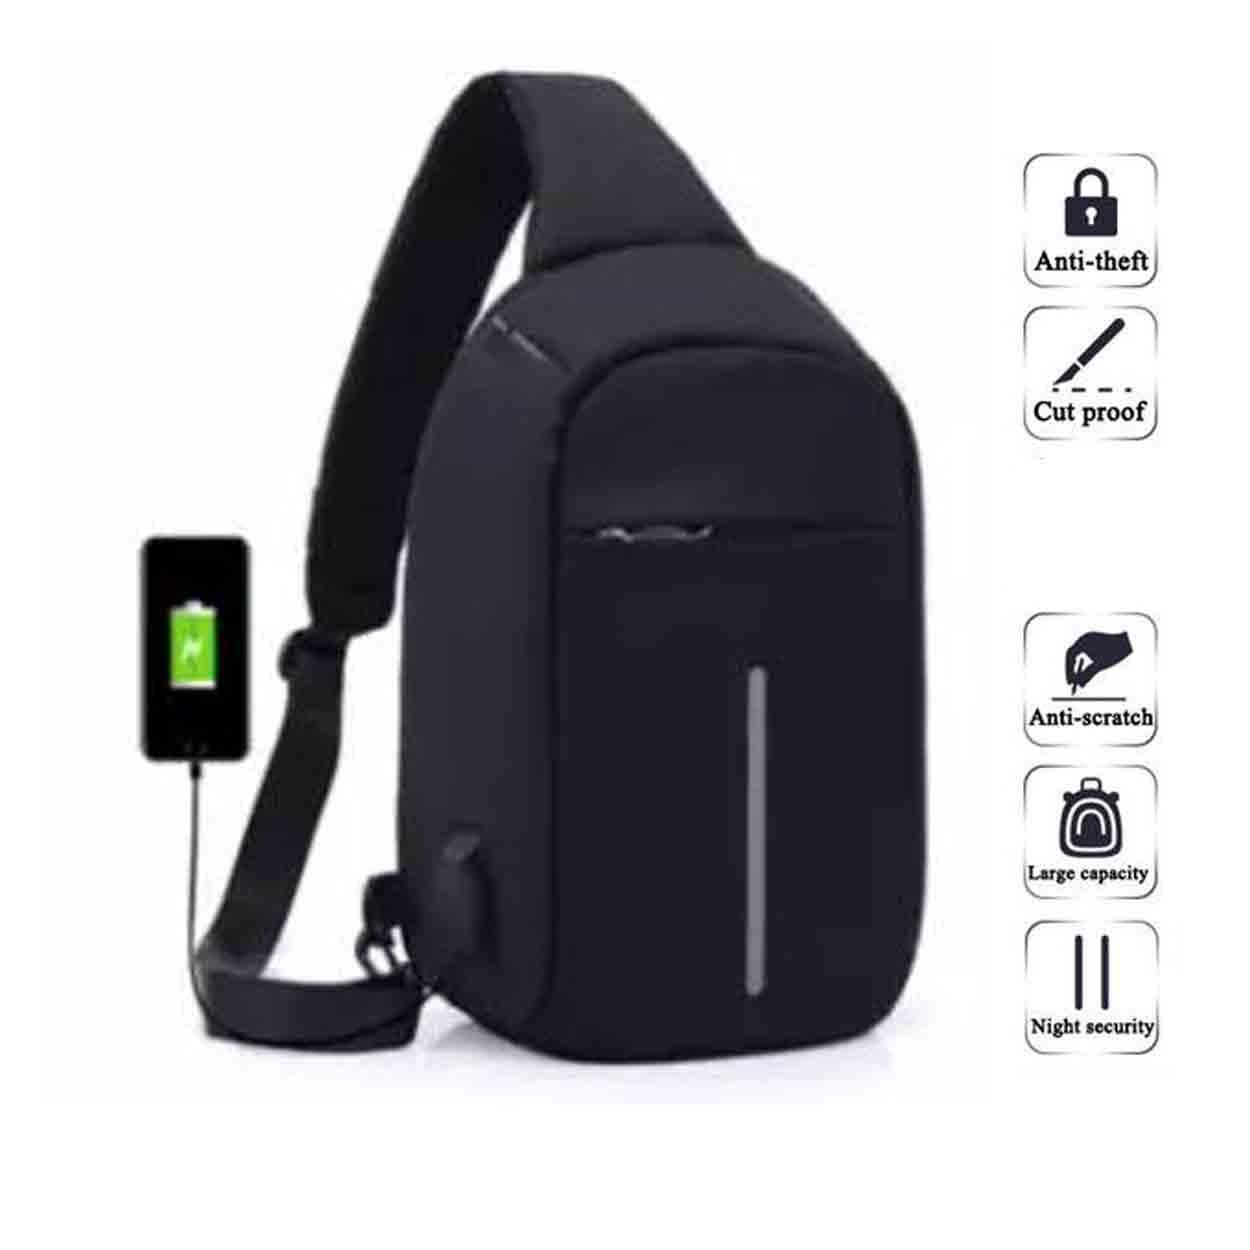 398a6f2f54 Anti Theft Bag Anti Theft Sling Bag Cross Body Bag With USB Charger Travel  Bag Messenger Bag Men Women Shoulder Bag Water Repellant Bag Casual Bag ...